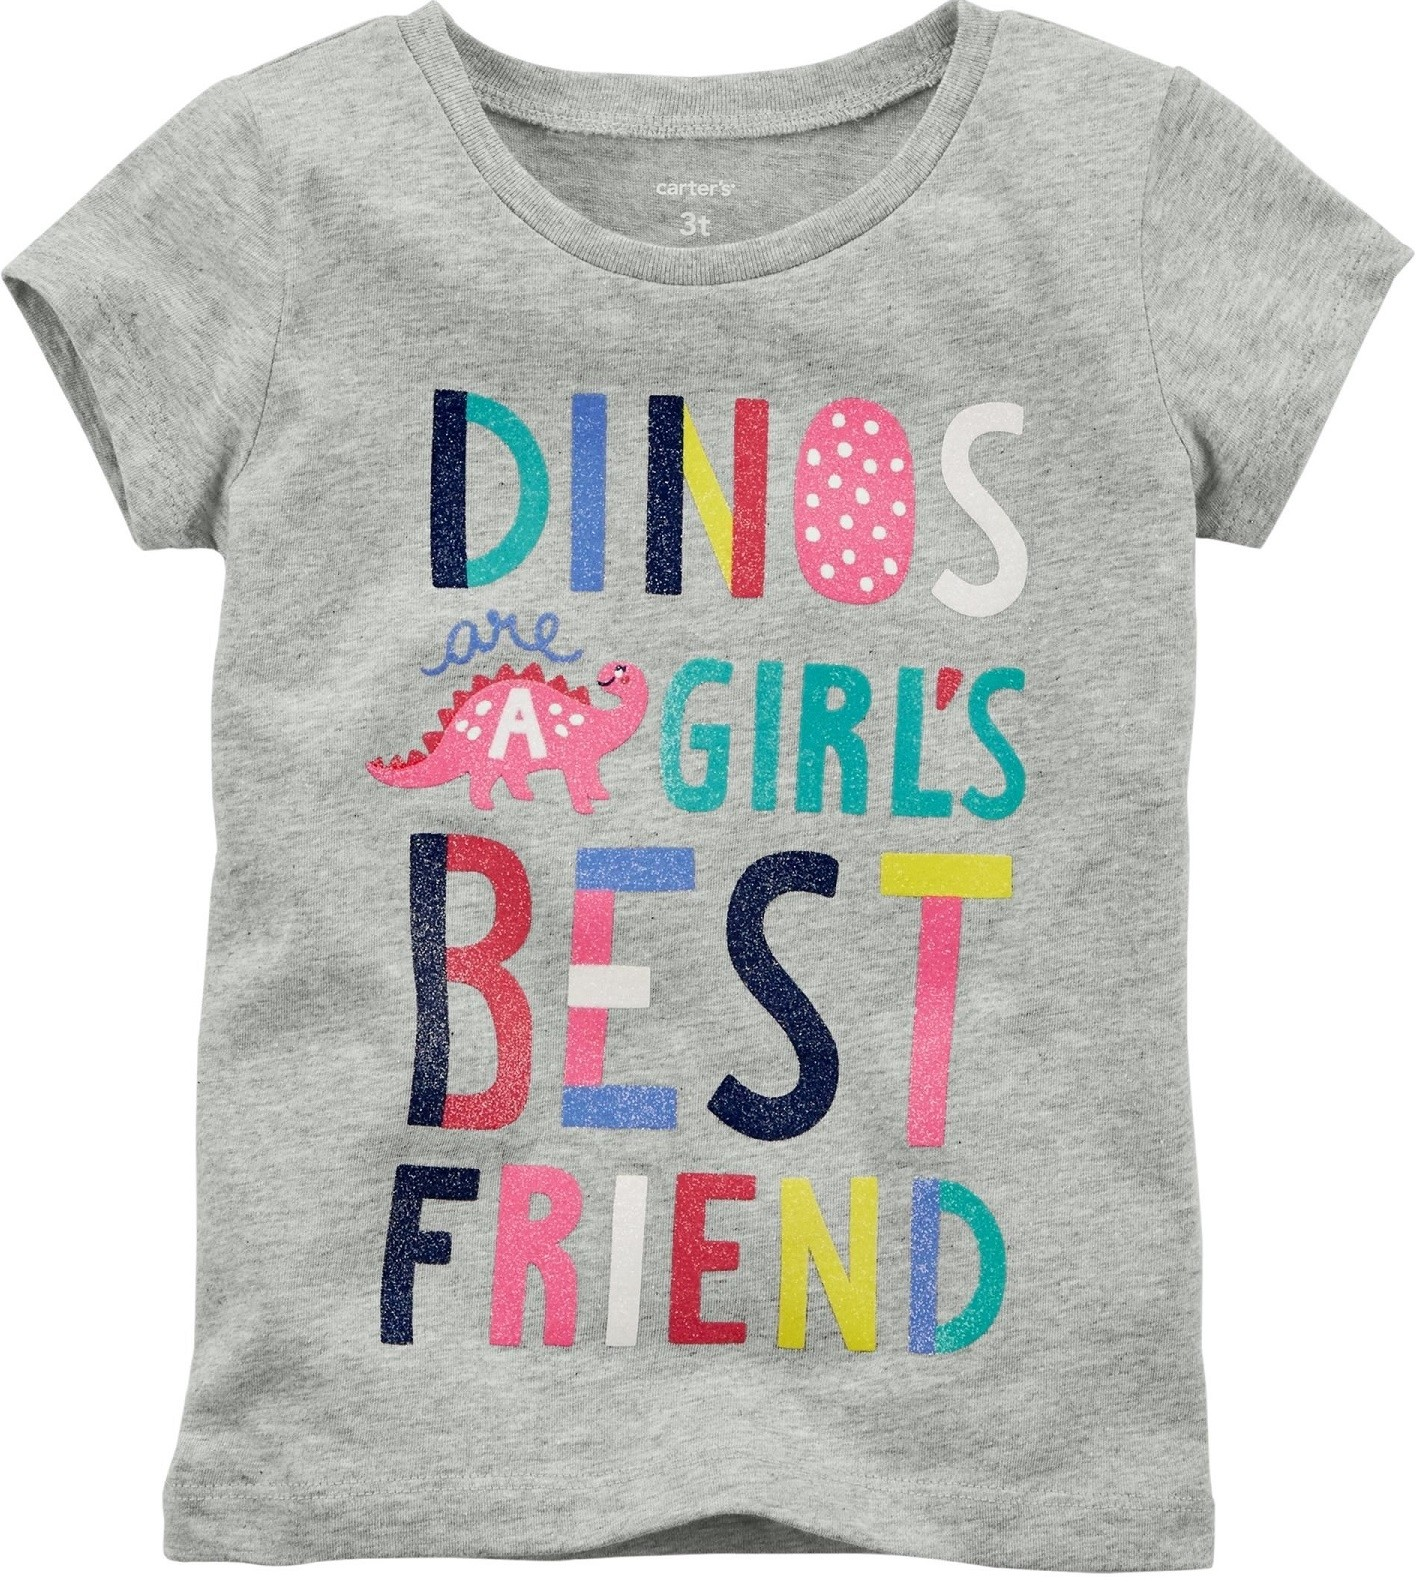 a8ead832913ea Dinos Are For Girls! Books, Toys, and Clothing for Mighty Girl ...